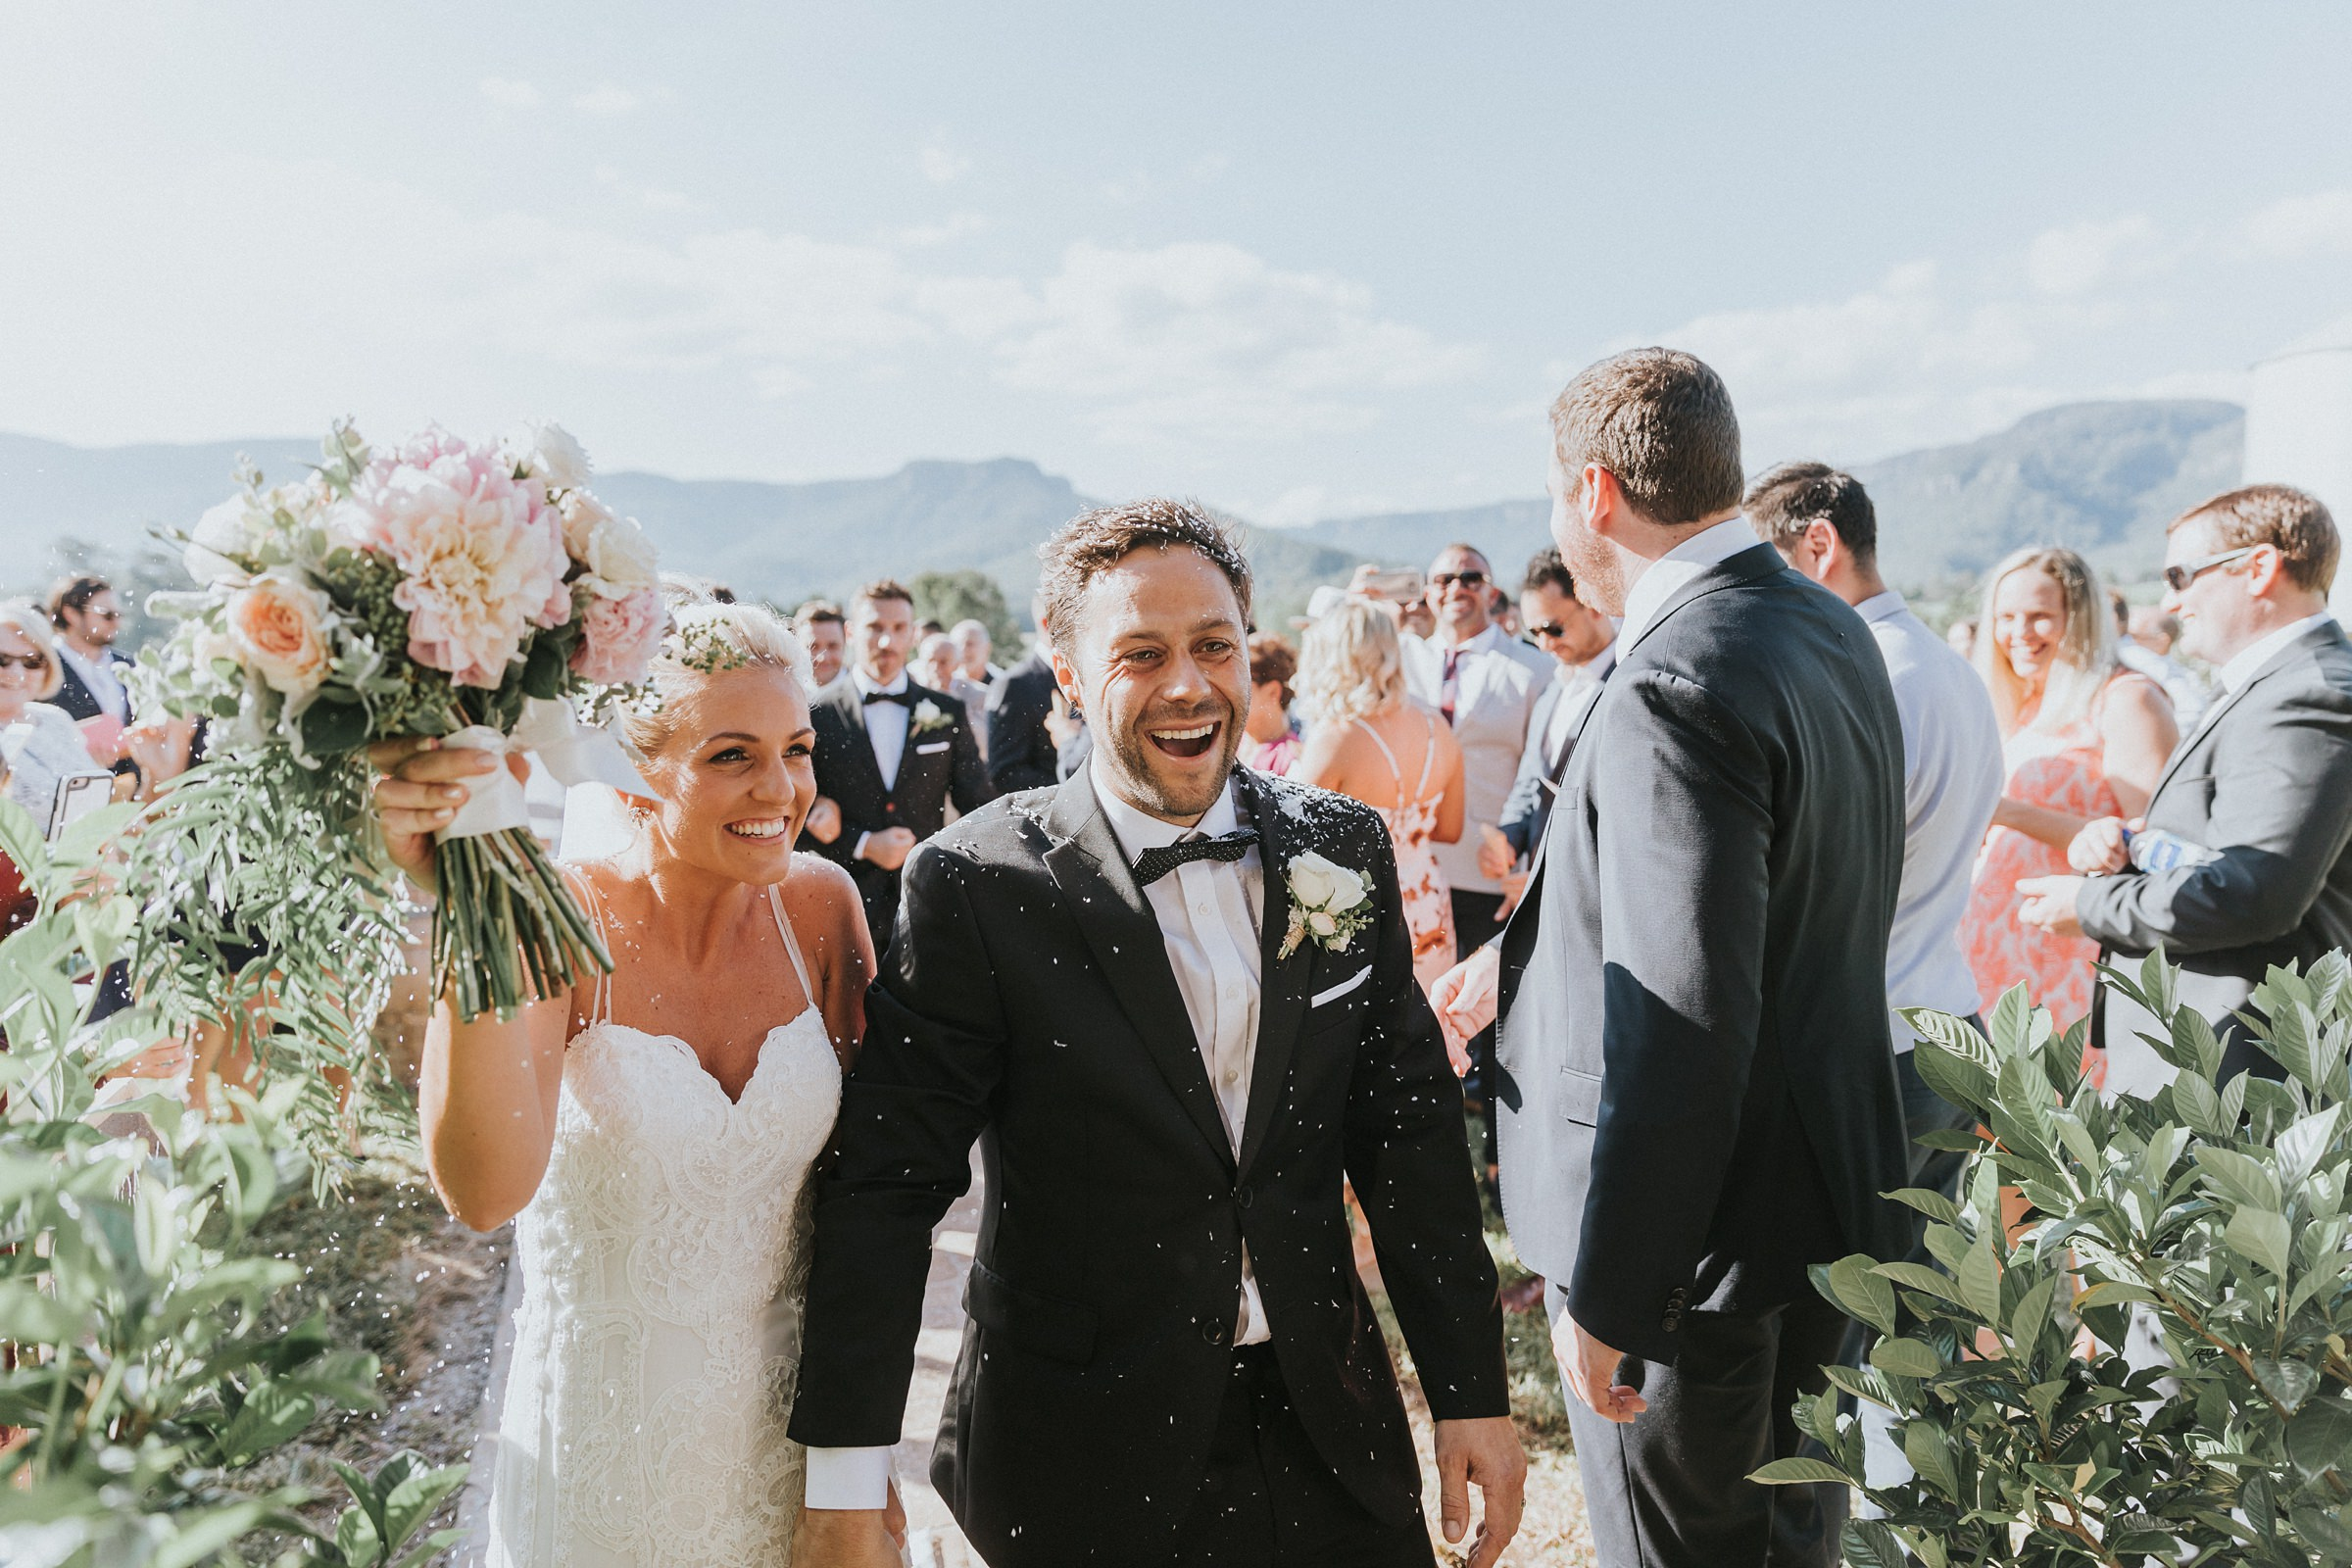 emotional groom is joyous during wedding recessional